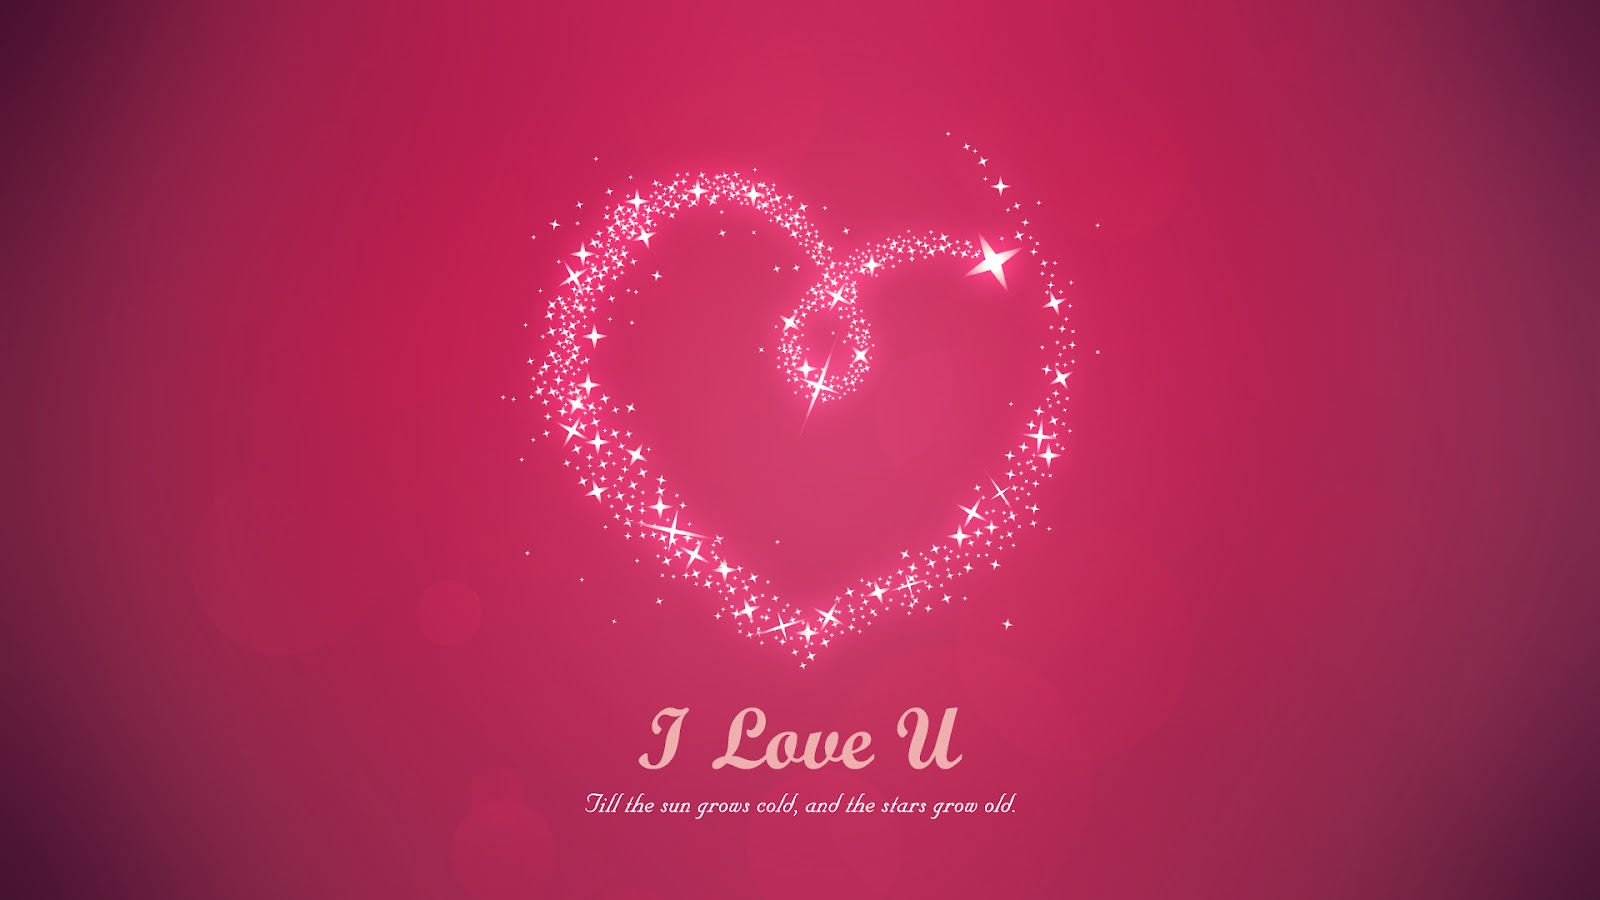 Love Wallpapers Blogspot : i love u wallpapers love wallpapers love quotes ...